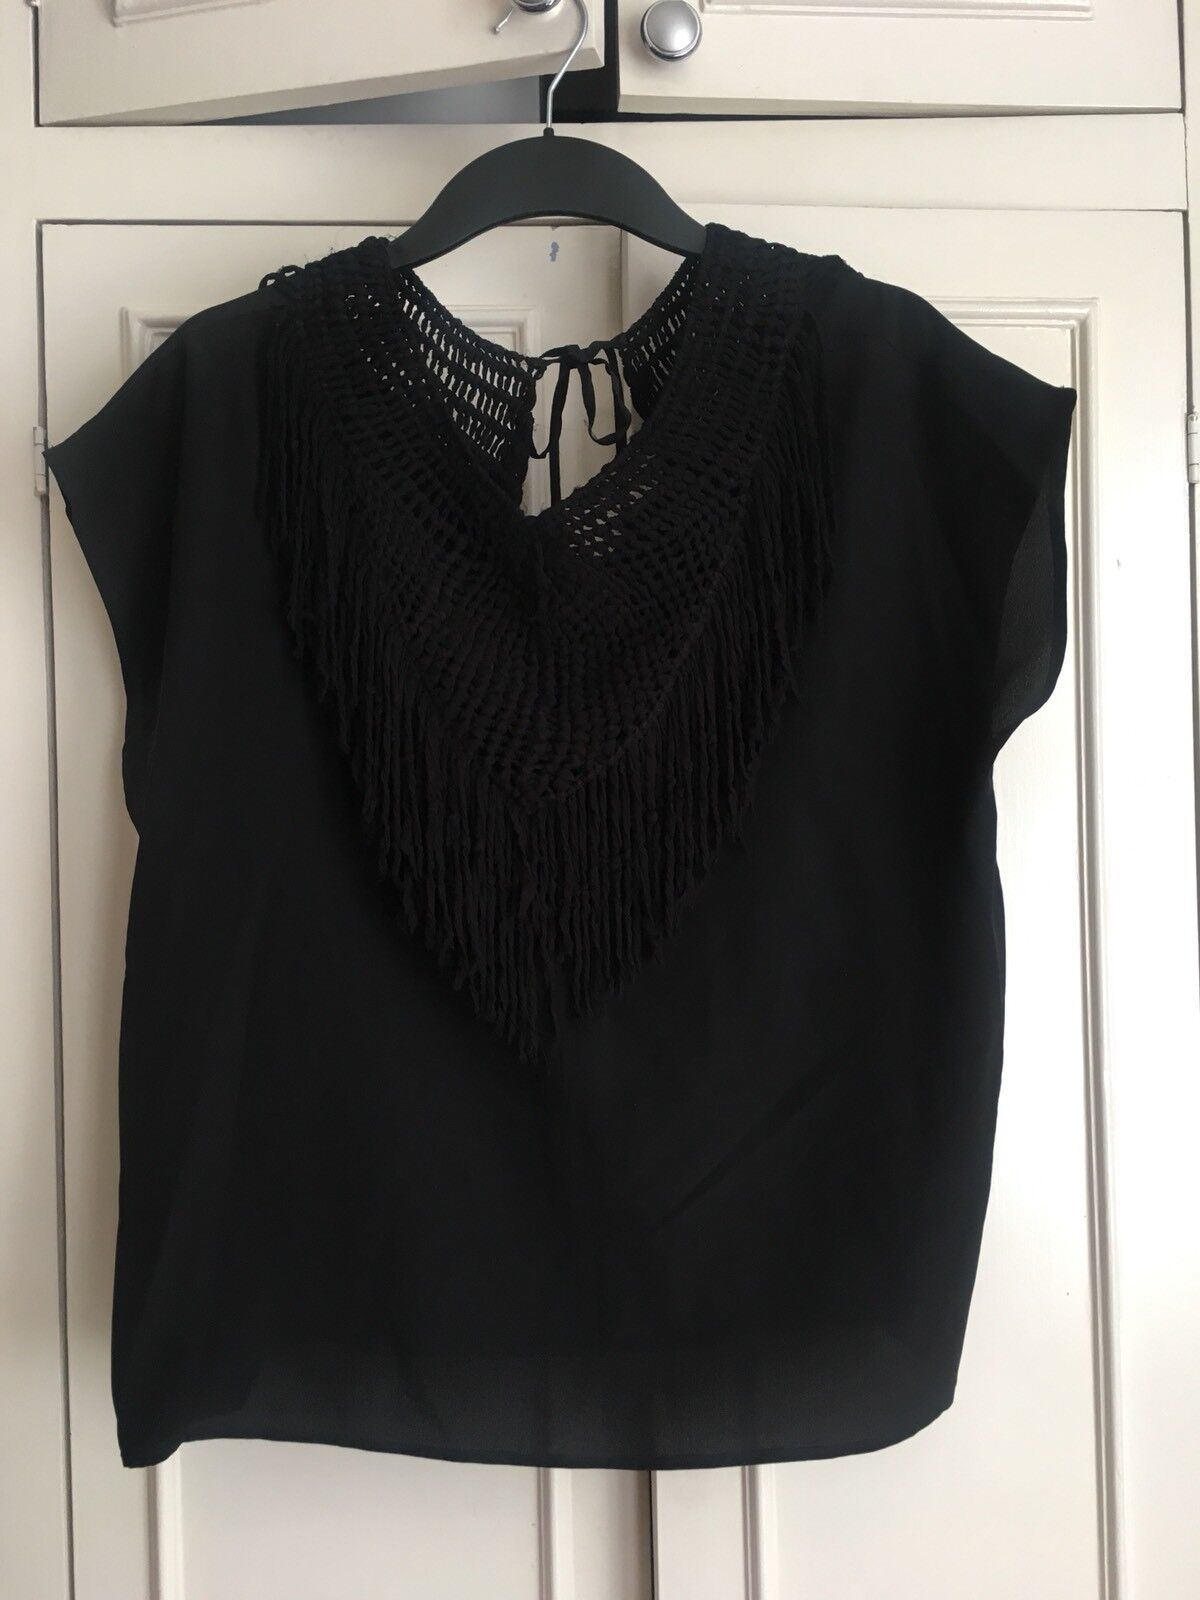 Ulla johnson Silk Top With Größe 14UK BNWT